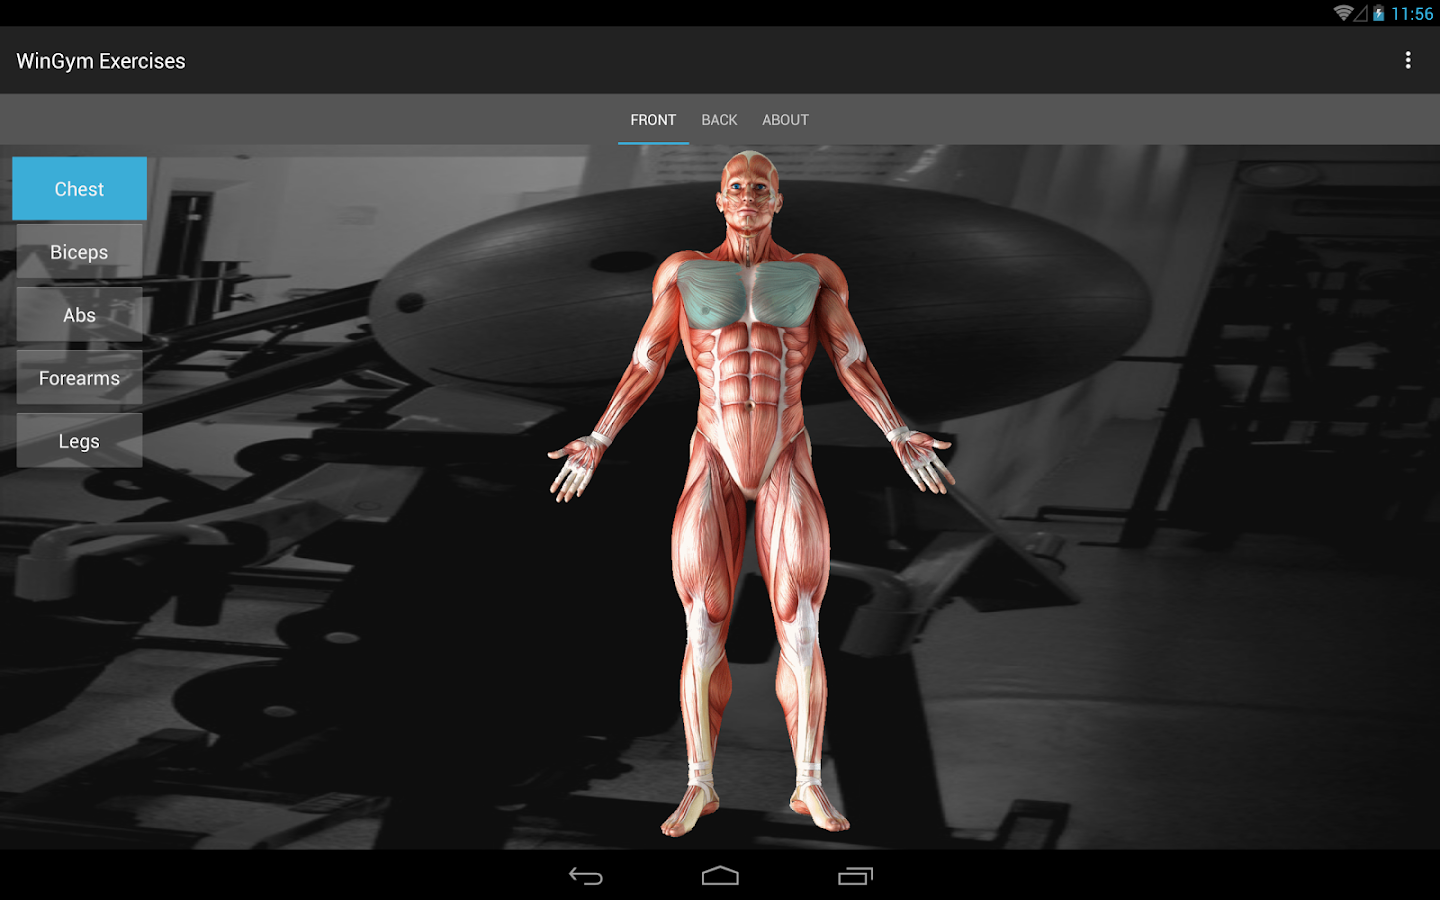 WinGym Exercises Premium Screenshot 5